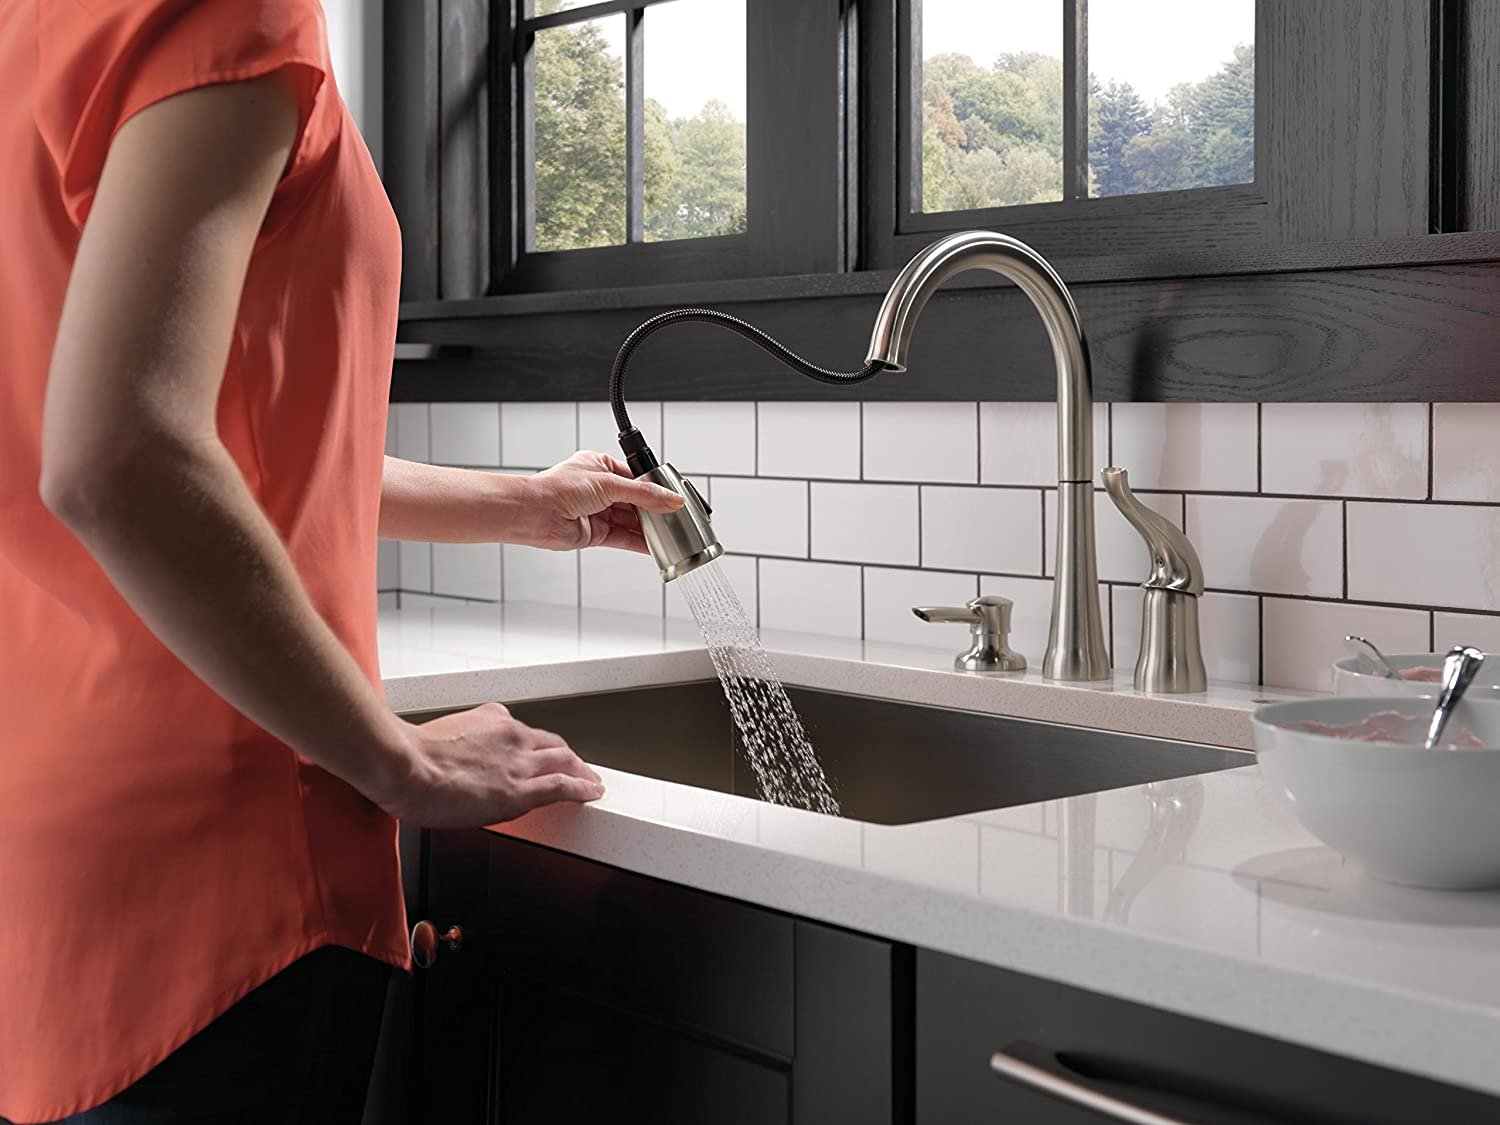 Merveilleux Delta 16970 SSSD DST Kate Single Handle Pull Down Kitchen Faucet With  Magnetic Docking Spray Head, Stainless   Touch On Kitchen Sink Faucets    Amazon.com